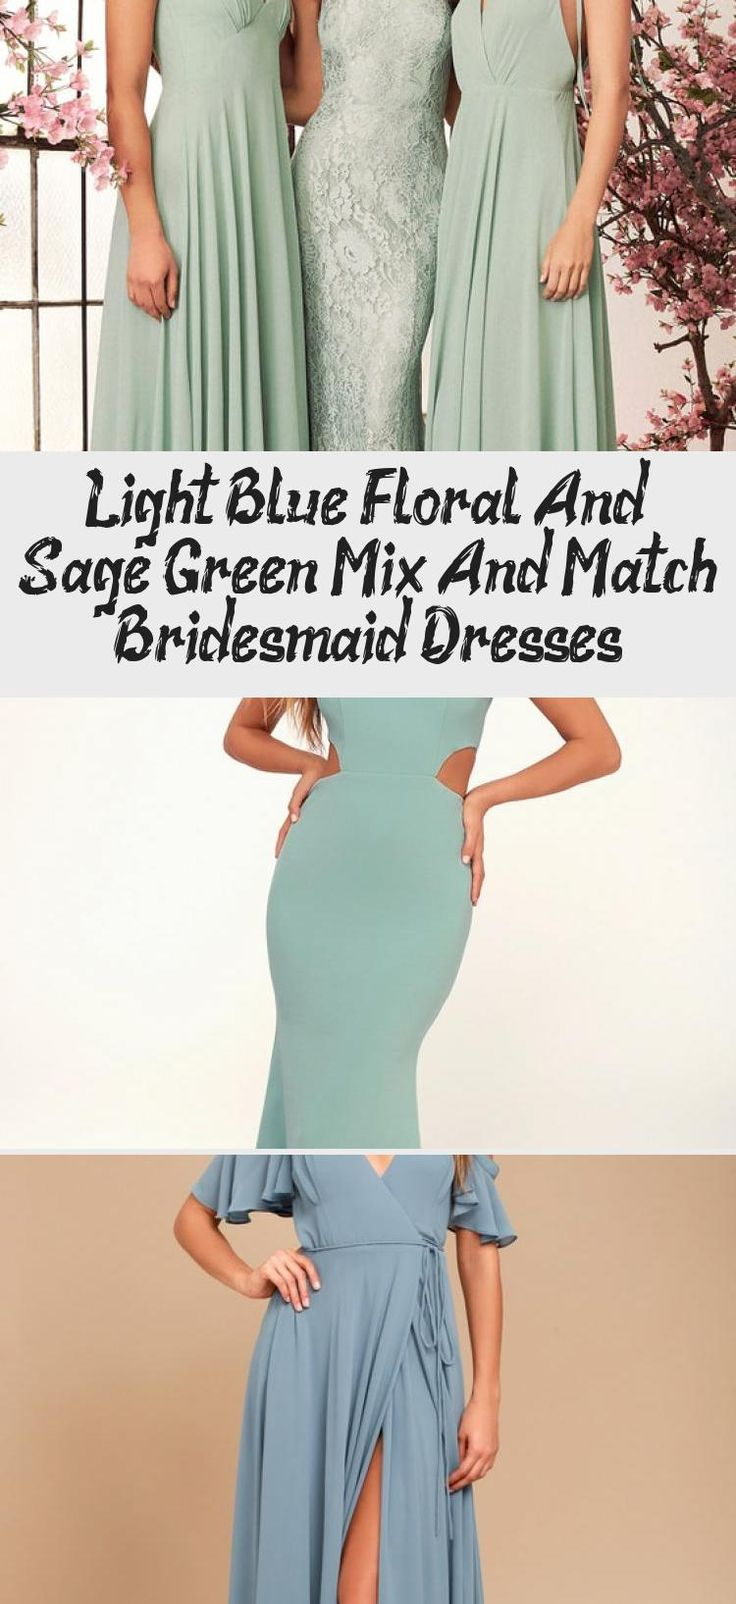 Blue floral and mist sage green mismatched bridesmaid dresses by Jenny Yoo #BridesmaidDressesWinter #WeddingBridesmaidDresses #LavenderBridesmaidDresses #TaupeBridesmaidDresses #ModestBridesmaidDresses